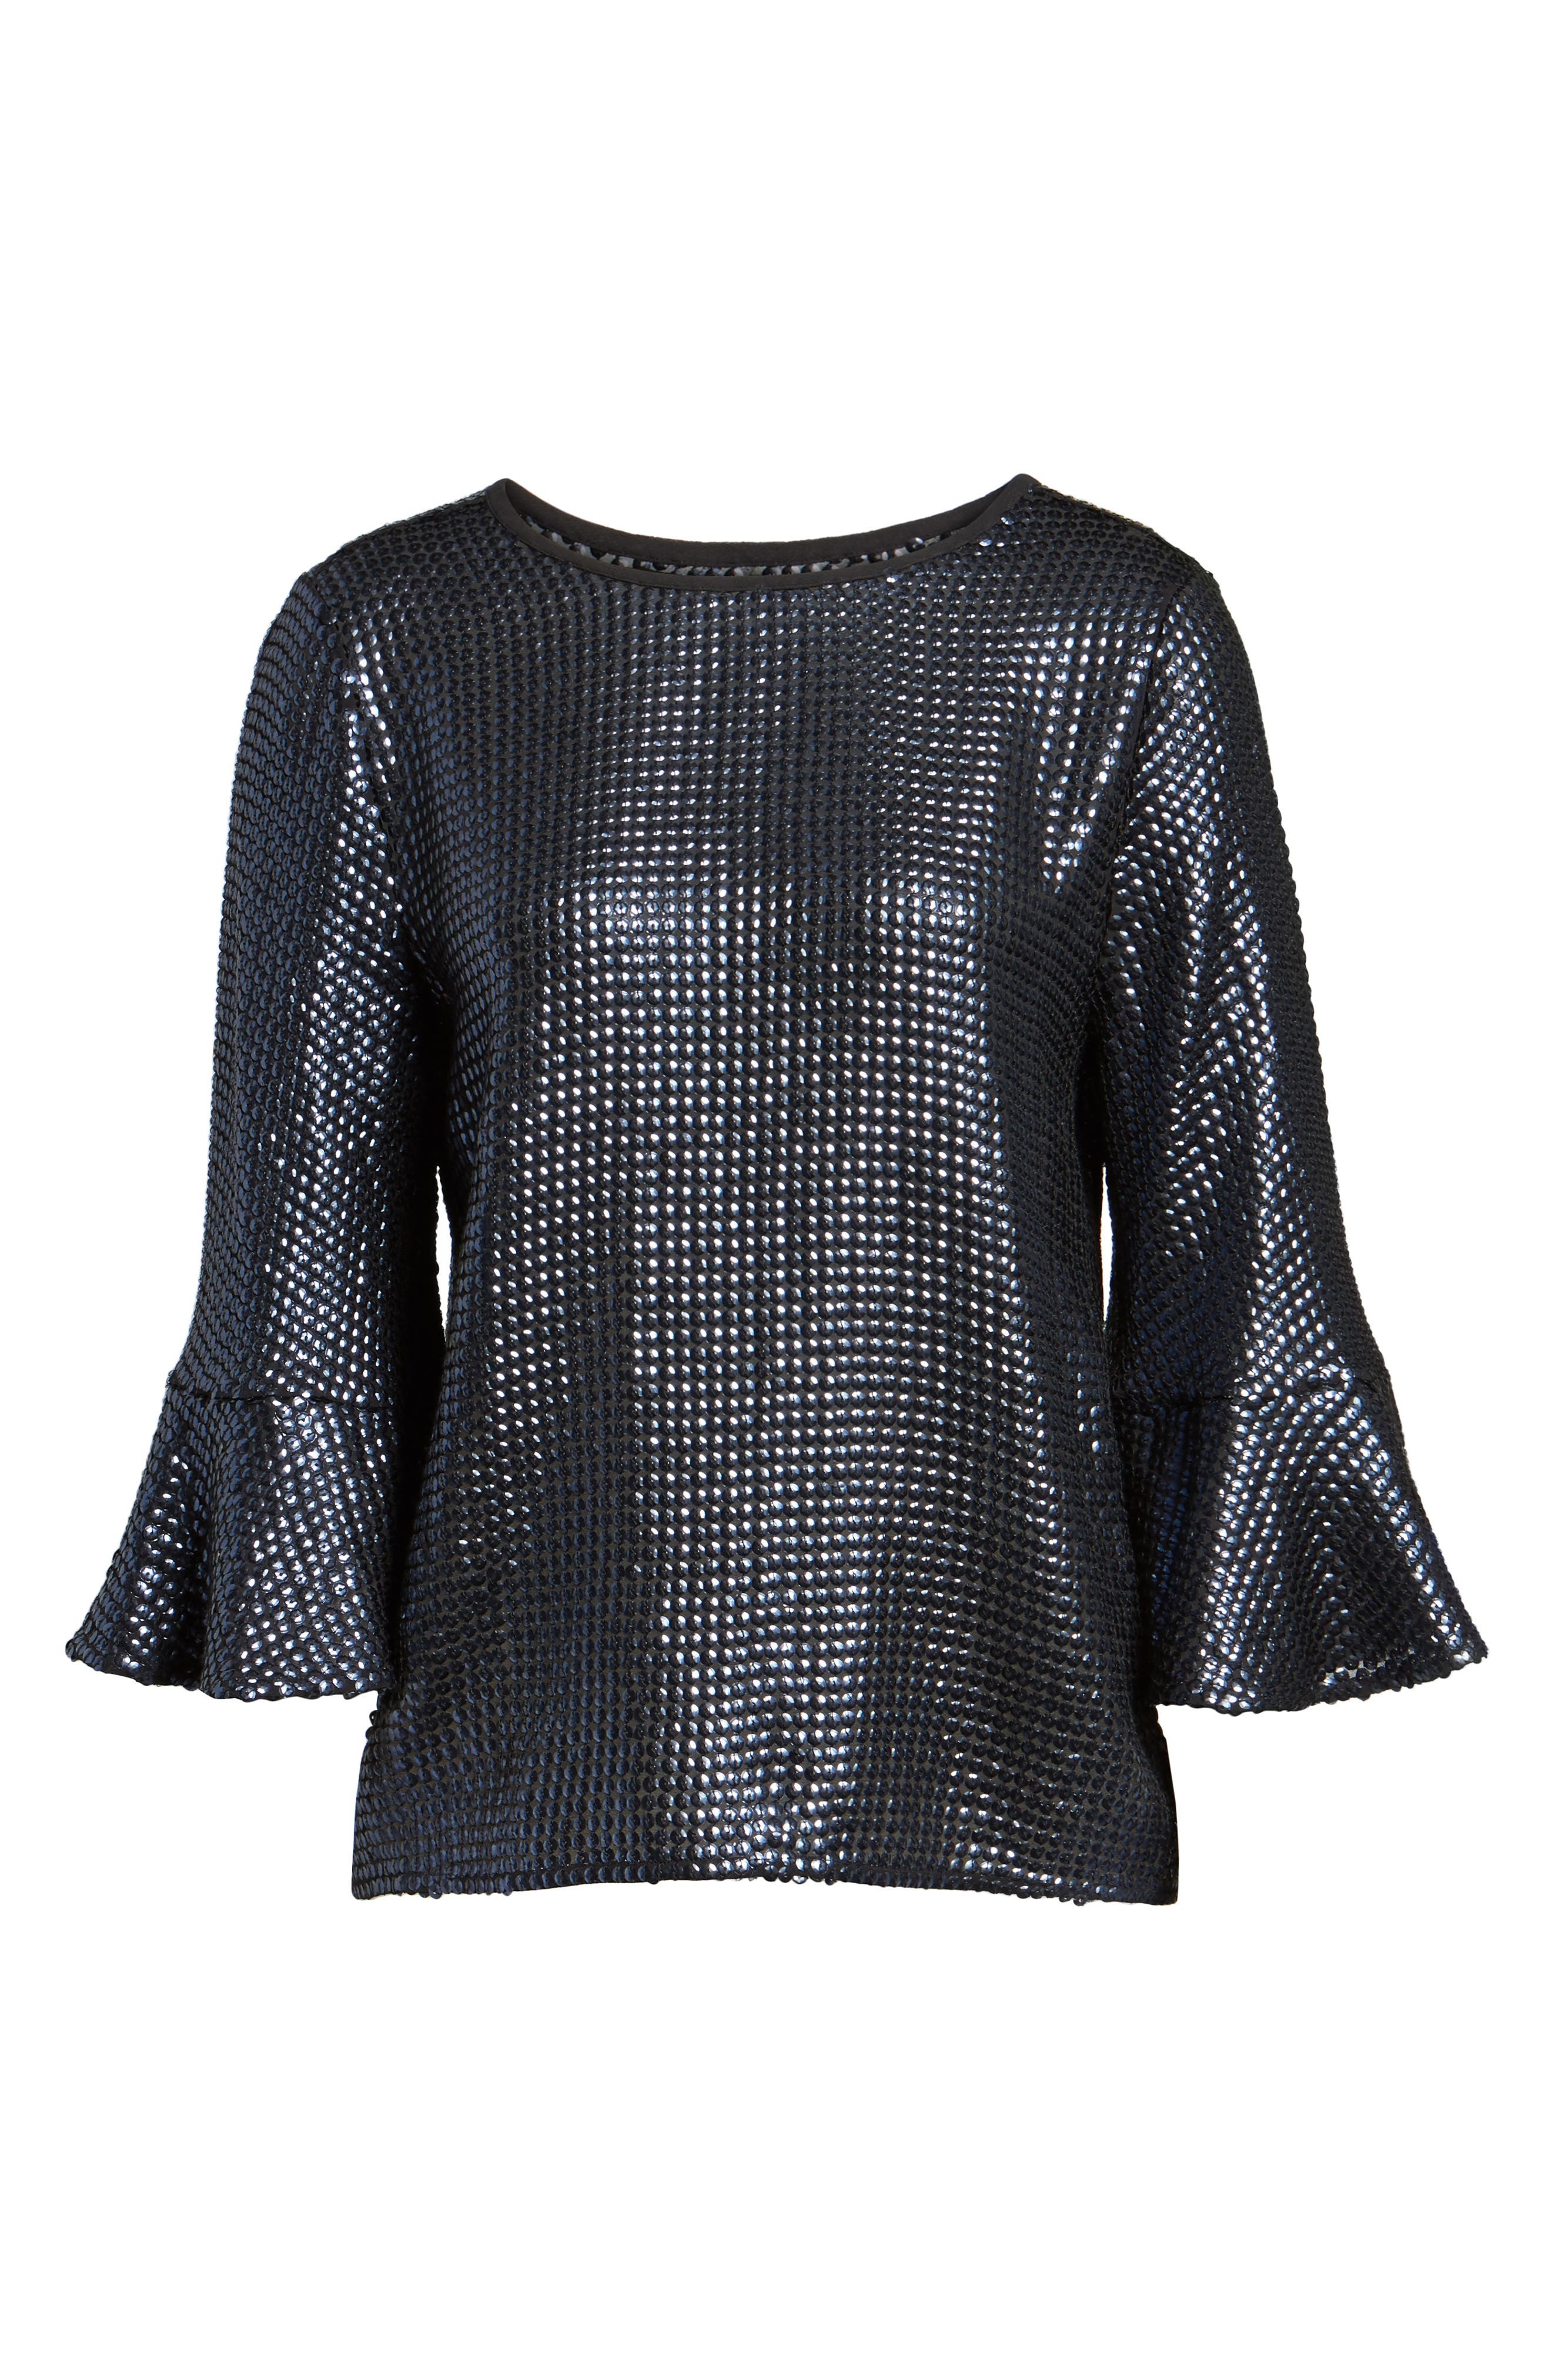 Sequin Bell Sleeve Top,                             Alternate thumbnail 6, color,                             410